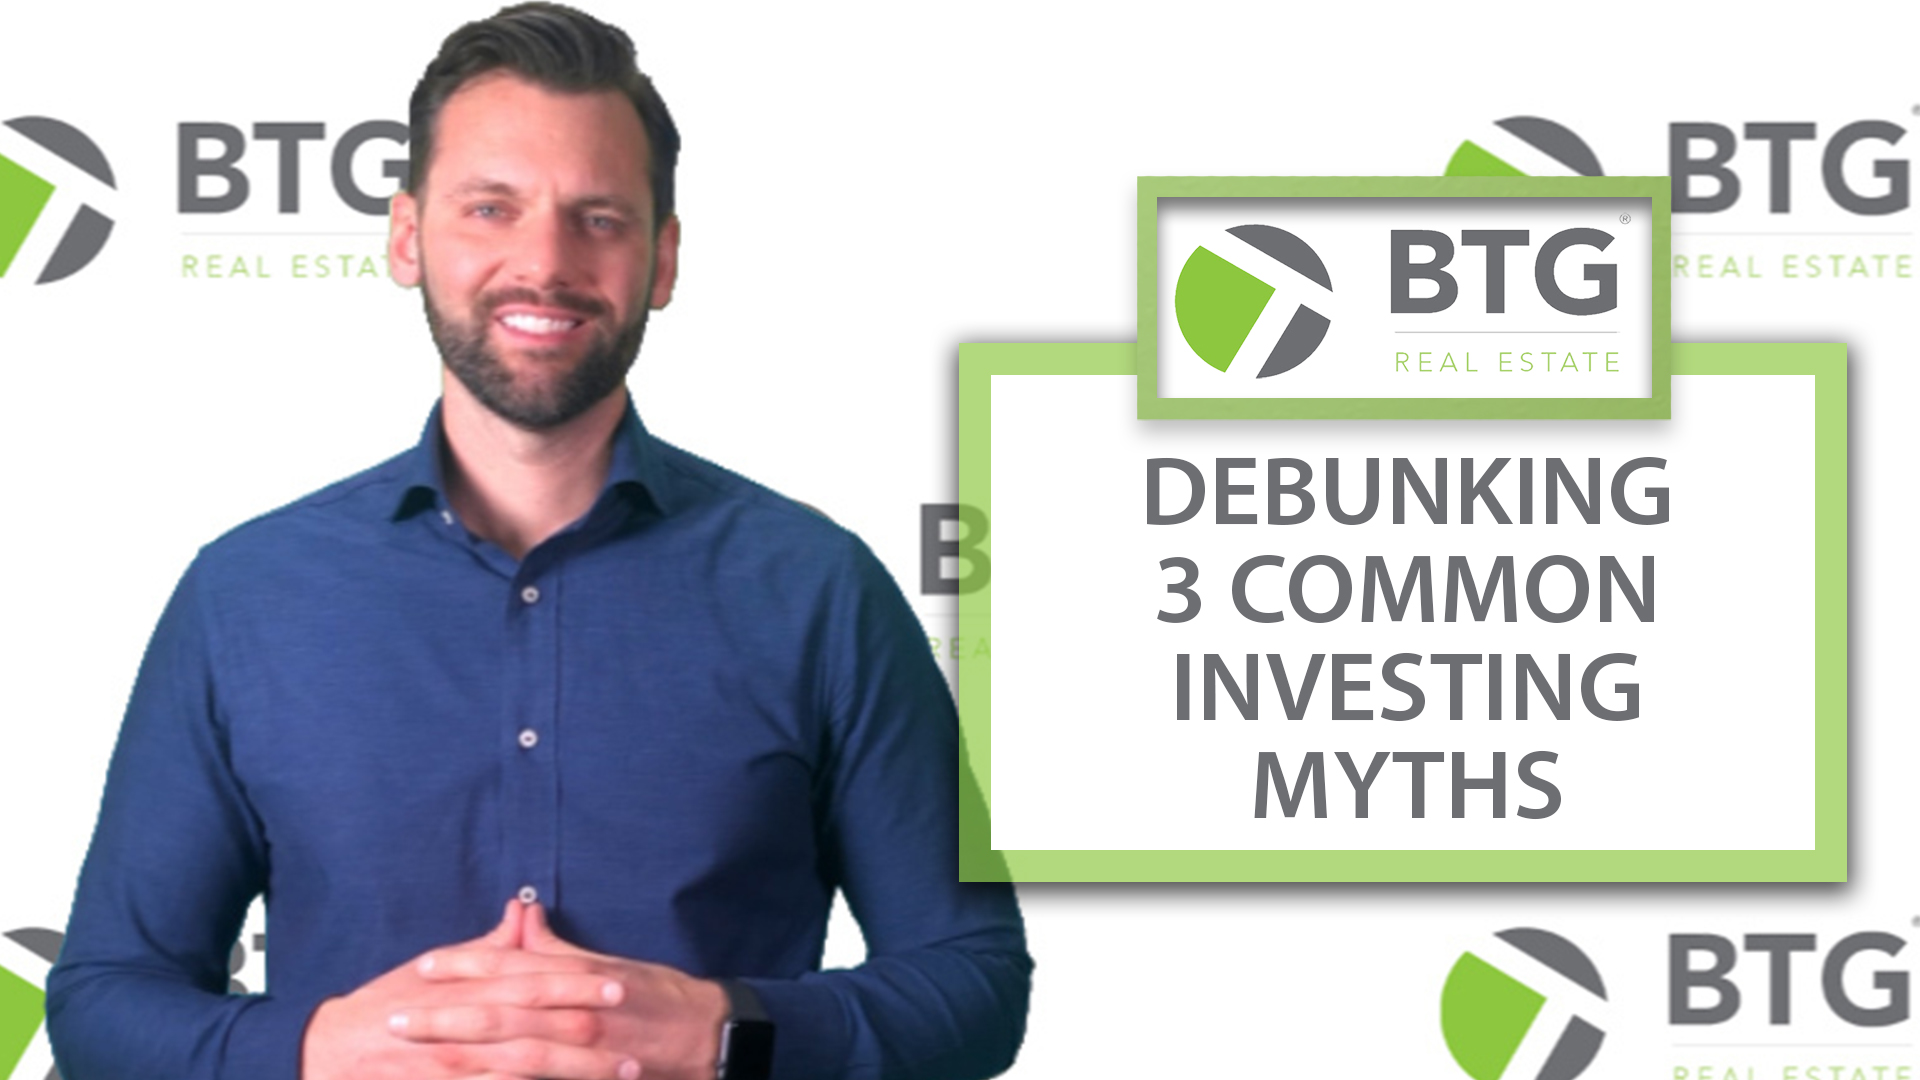 3 Common Real Estate Investing Myths That Totally Miss the Mark